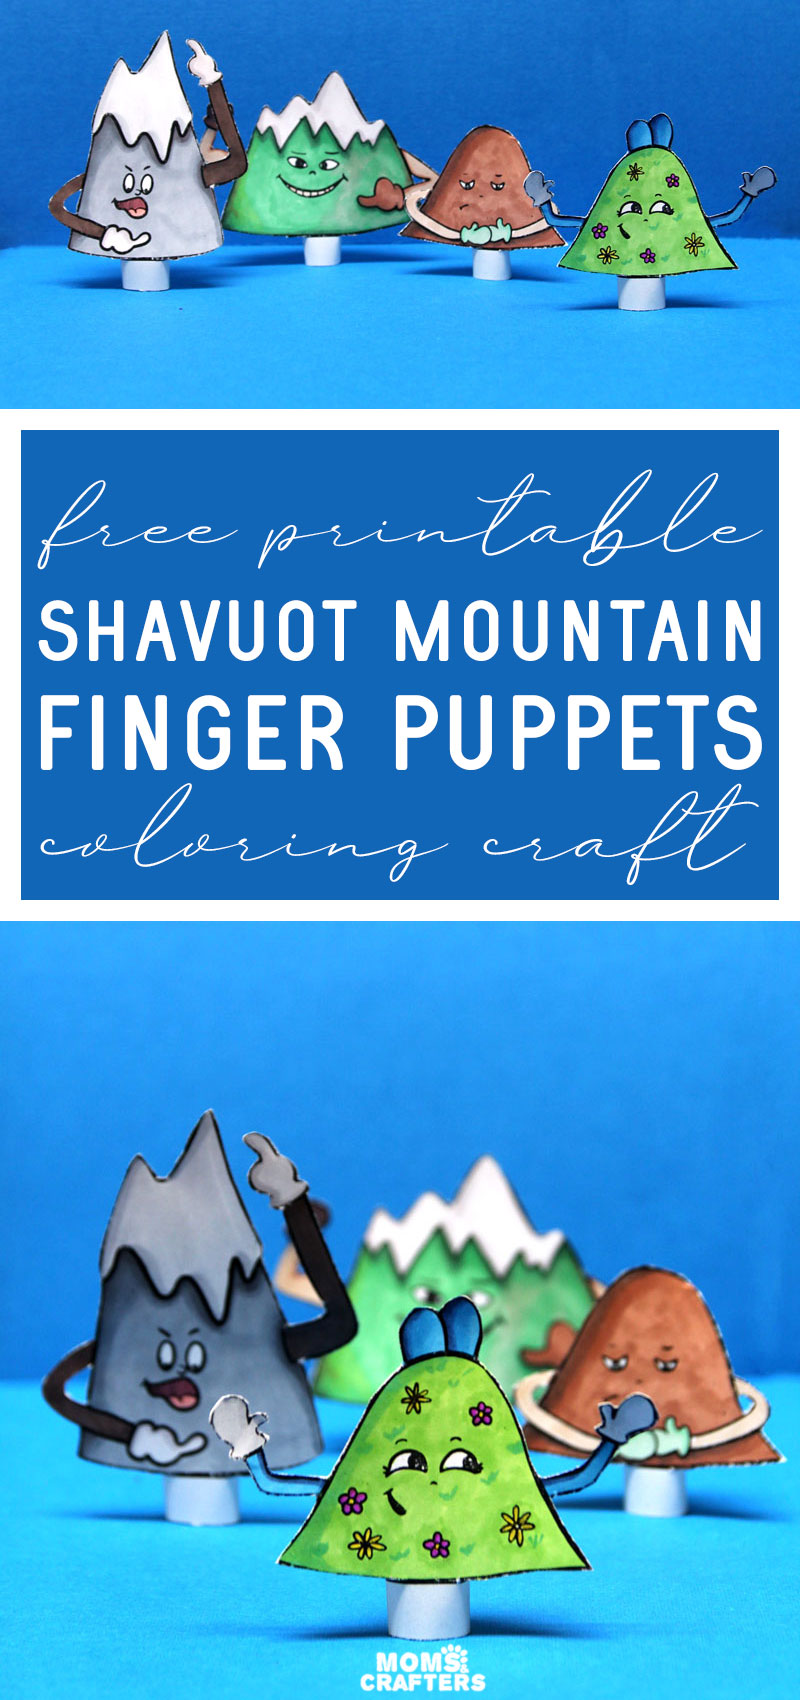 Click to download free printable shavuot puppets including Har sinai and the lesson on being humble! This fun Jewish shavuos craft for kids is great for preschool and toddlers and a fun at home activity or Hebrew school craft.